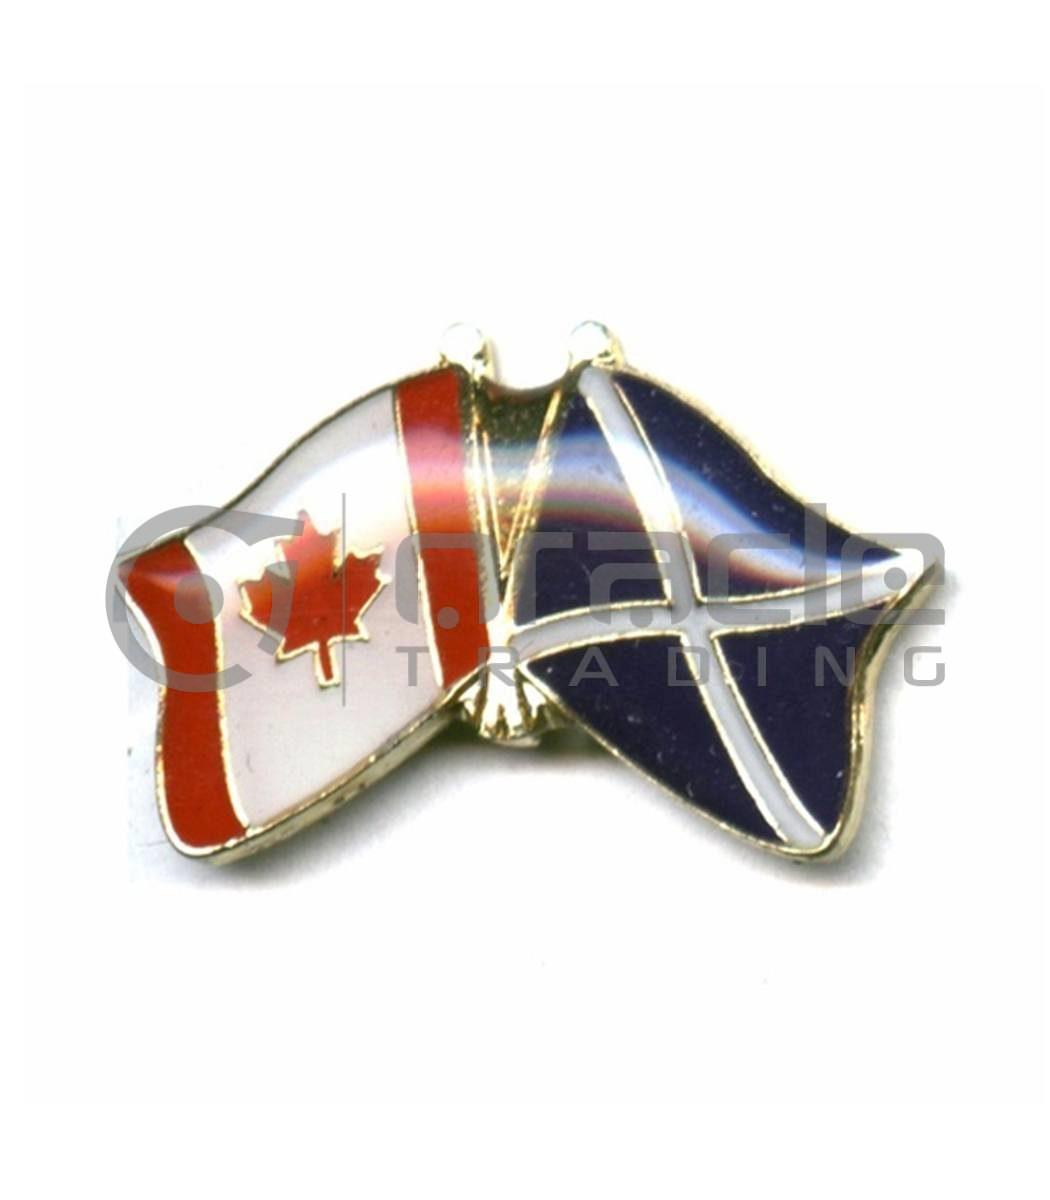 Scotland / Canada Friendship Lapel Pin (St. Andrew's Cross)